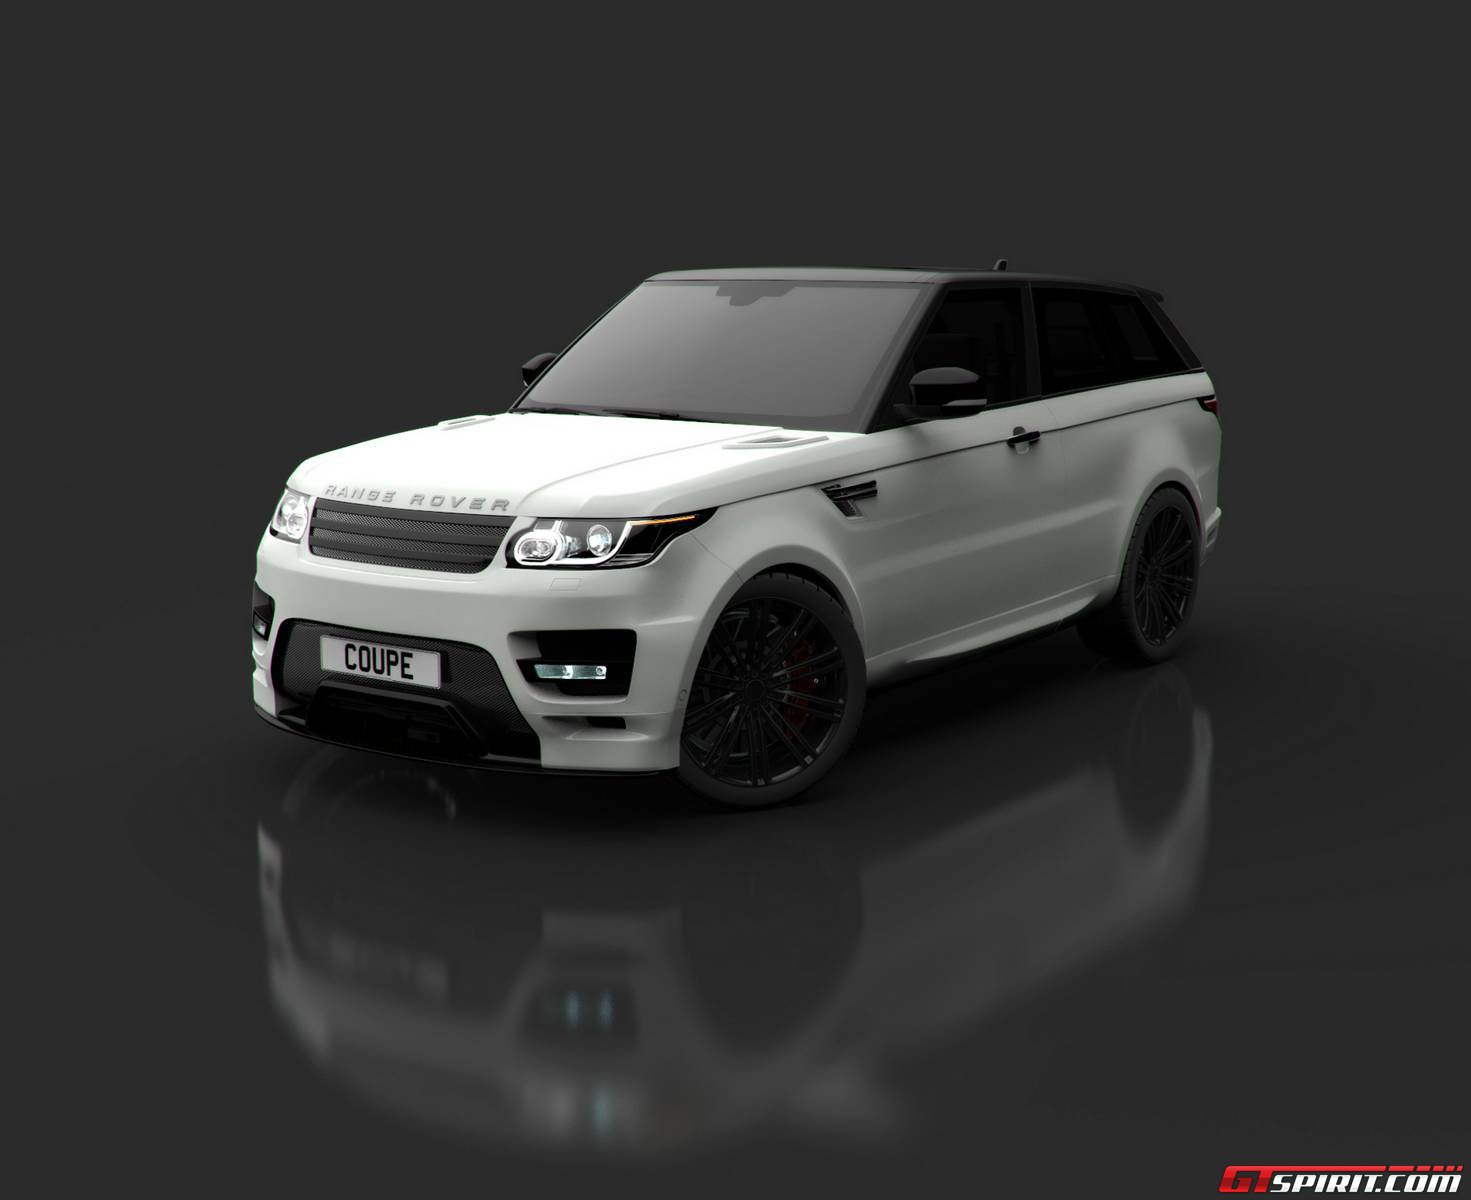 official range rover sport coupe by bulgari design gtspirit. Black Bedroom Furniture Sets. Home Design Ideas